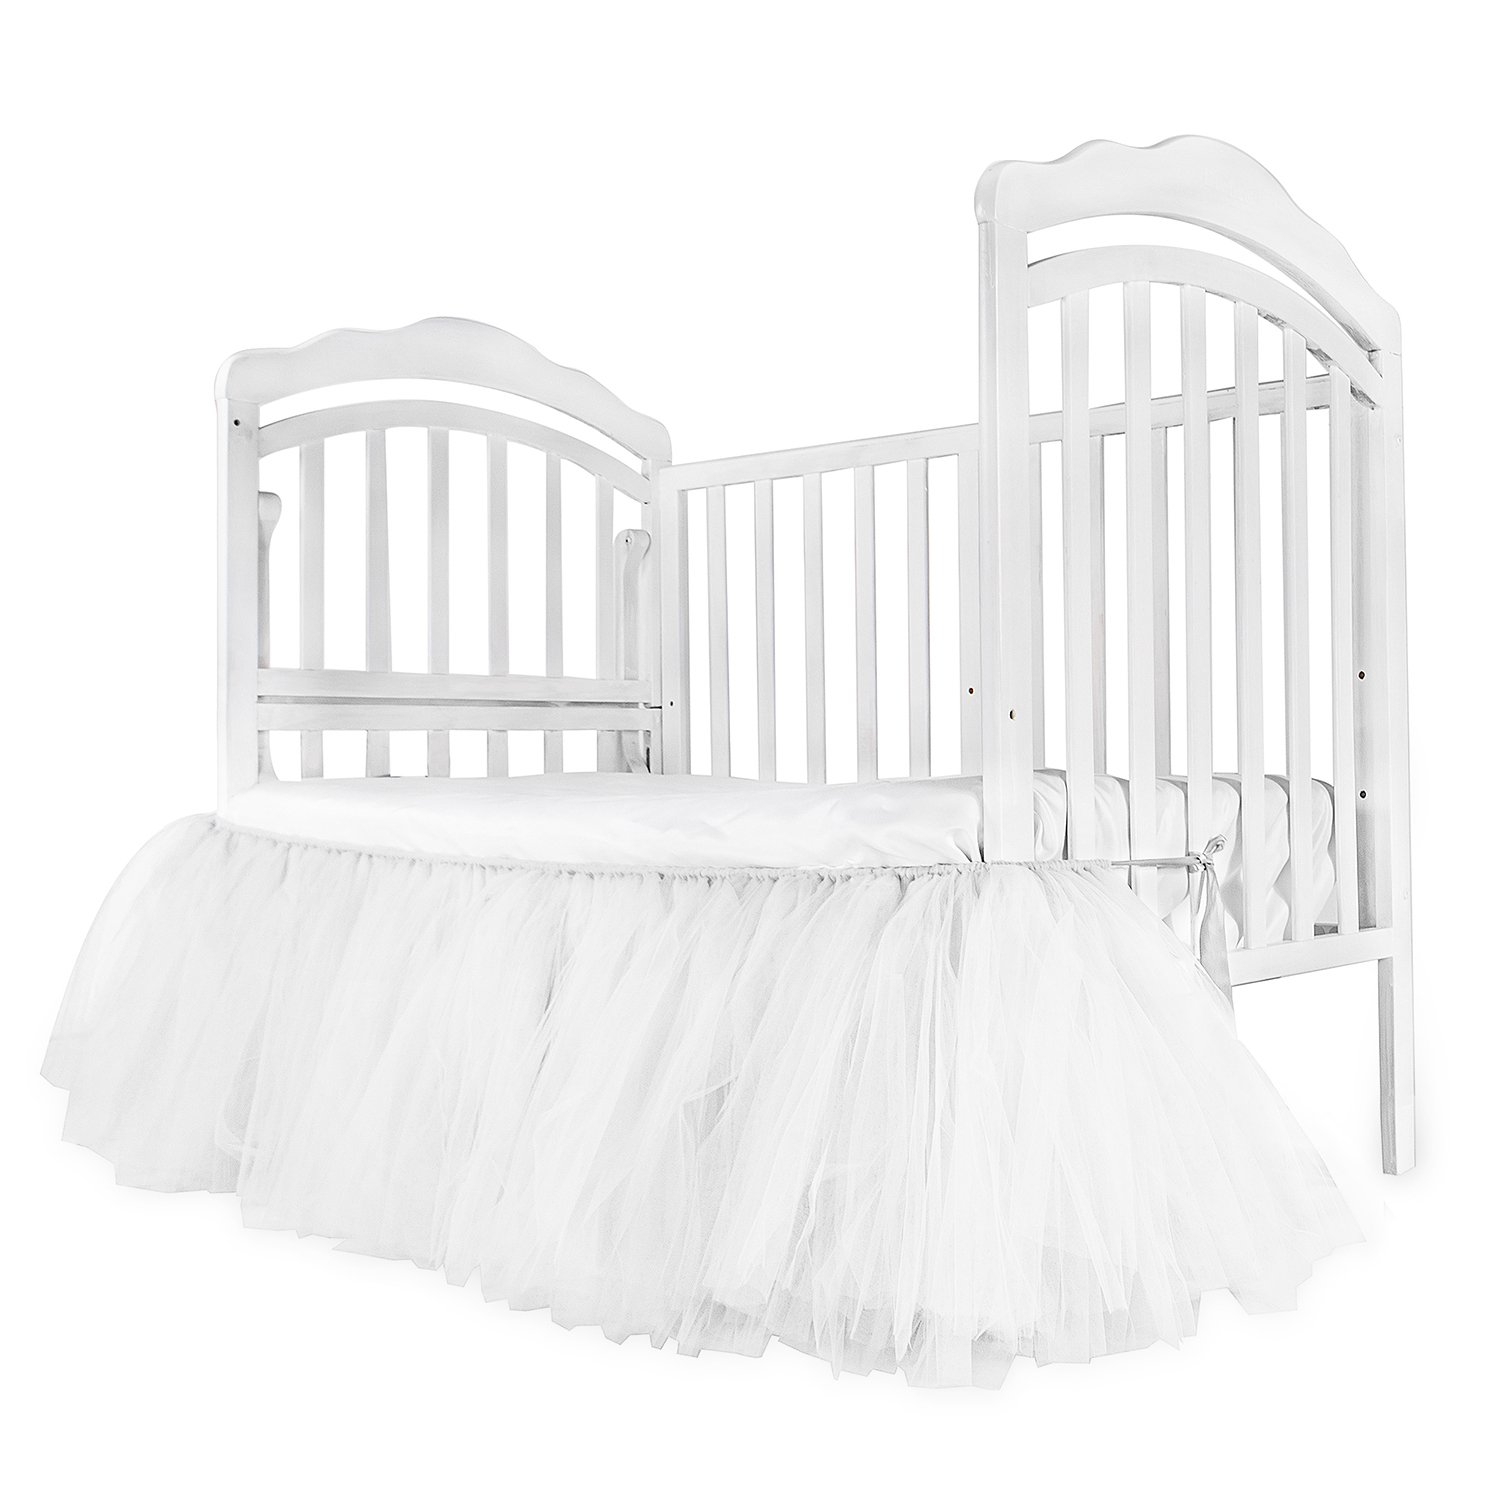 CO-AVE White Crib Skirt Baby Ruffle Baby Bed Skirt Portable Tulle Tutu Crib Skirt Handmade for Boys or Girls Birthday Party,Baby Shower &Baby Room Decoration,16'' Drop,One Side by CO-AVE